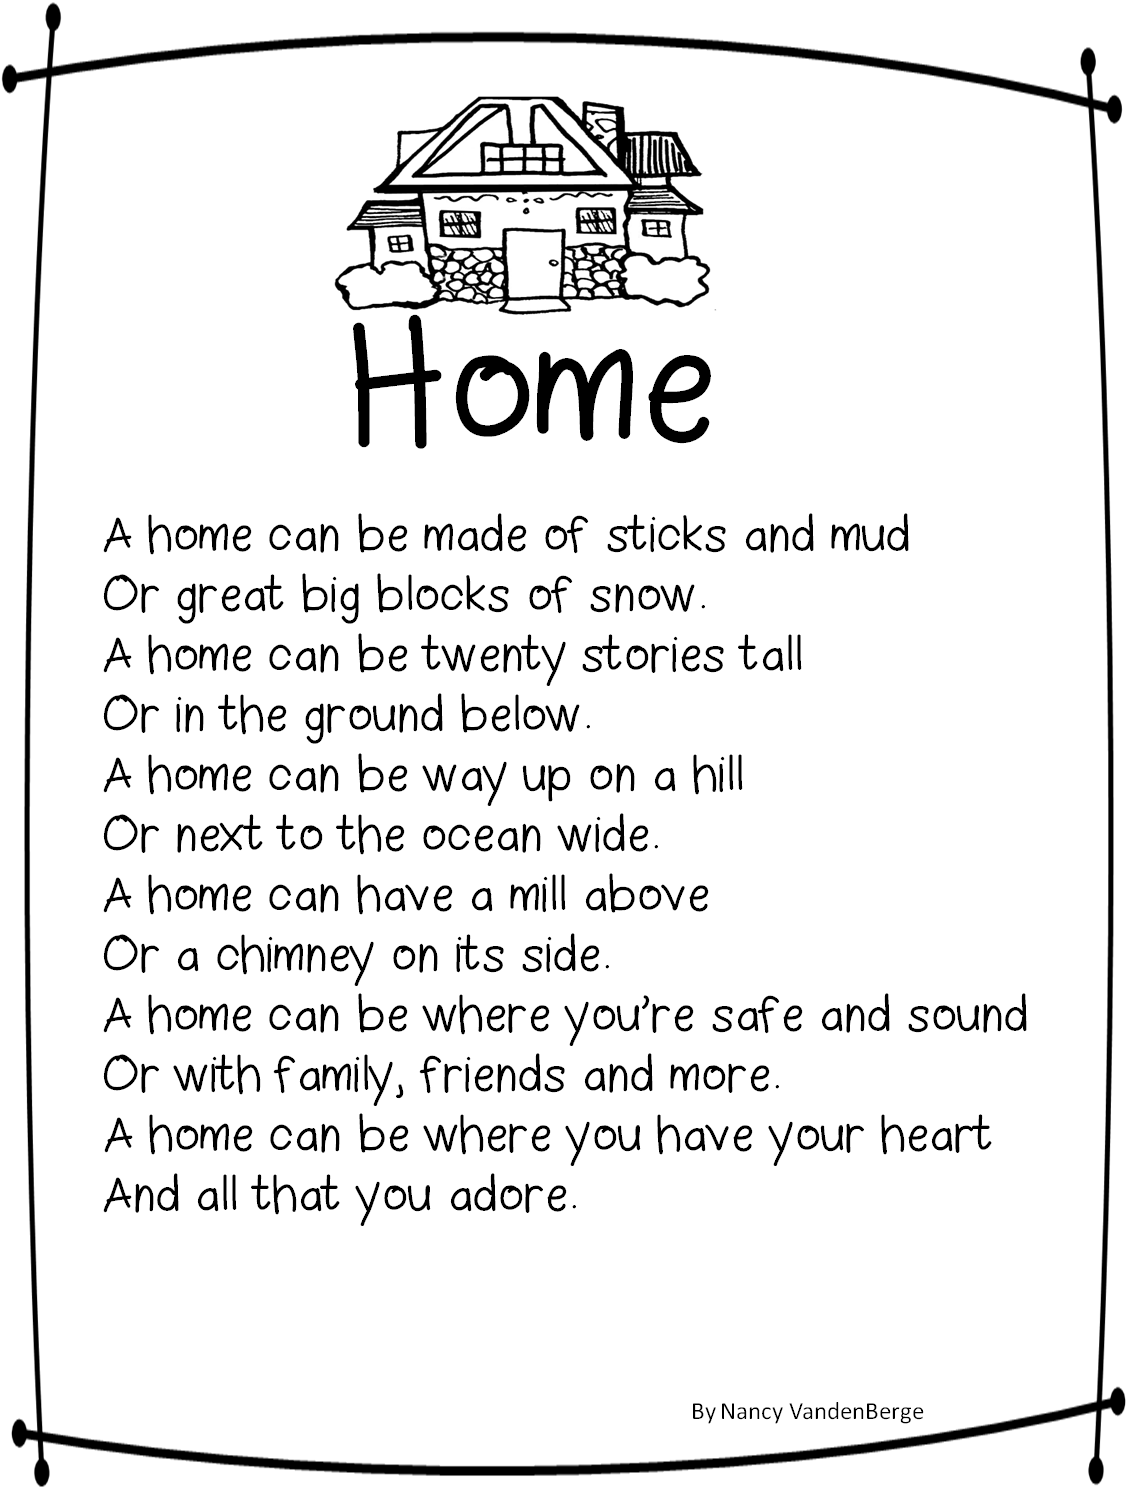 house poems poems first grade wow home sweet home human characteristics